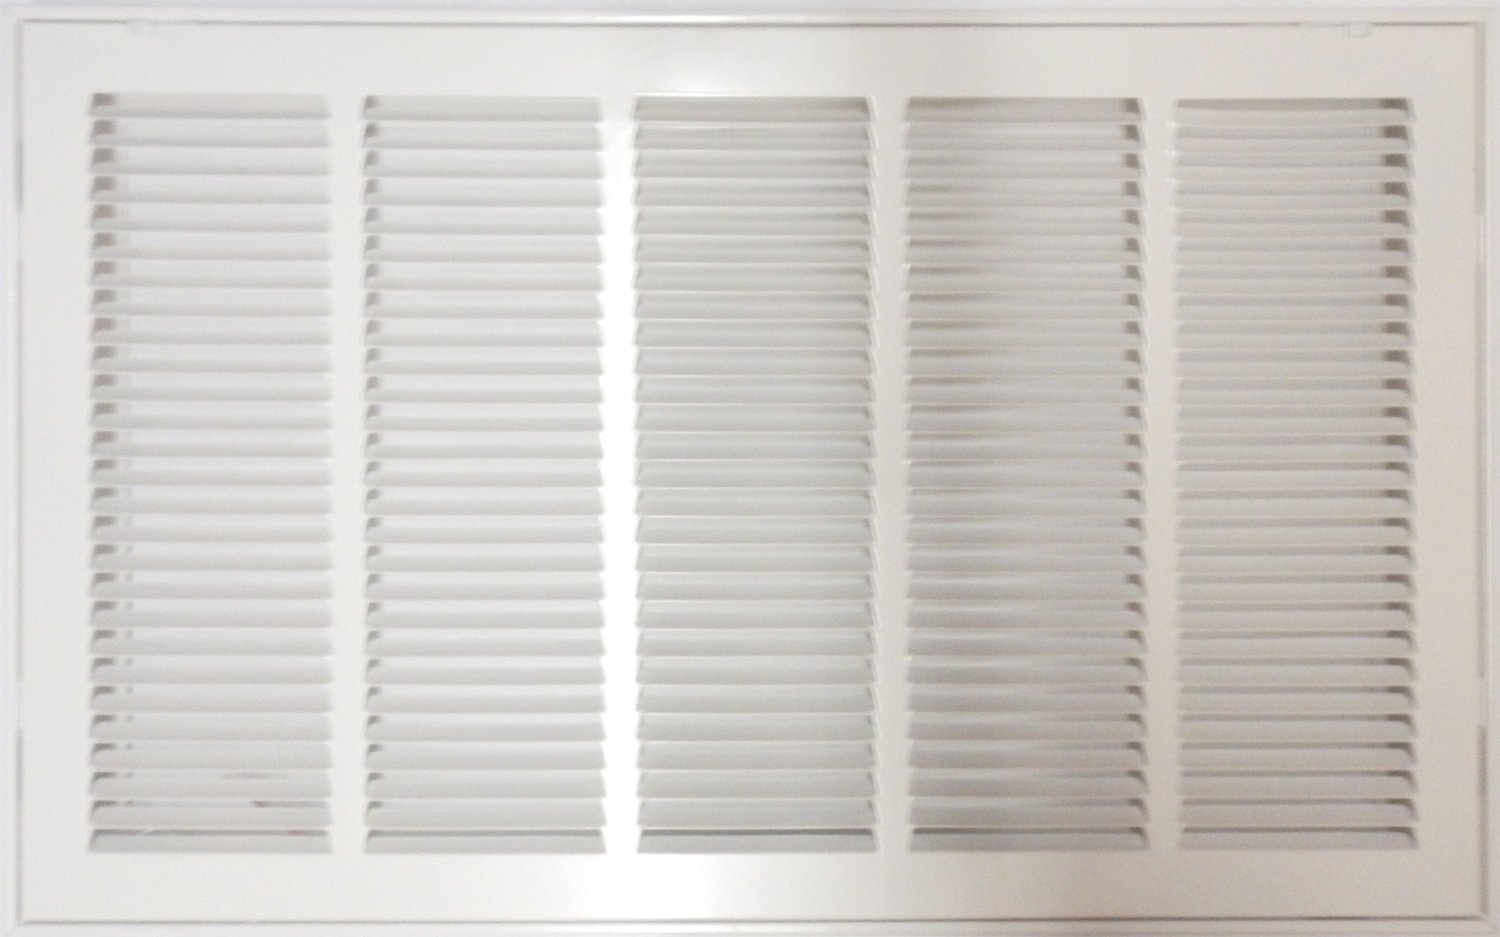 25'' X 20 Steel Return Air Filter Grille for 1'' Filter - Removable Face/Door - HVAC DUCT COVER - Flat Stamped Face - White [Outer Dimensions: 27.5''w X 22.5''h]